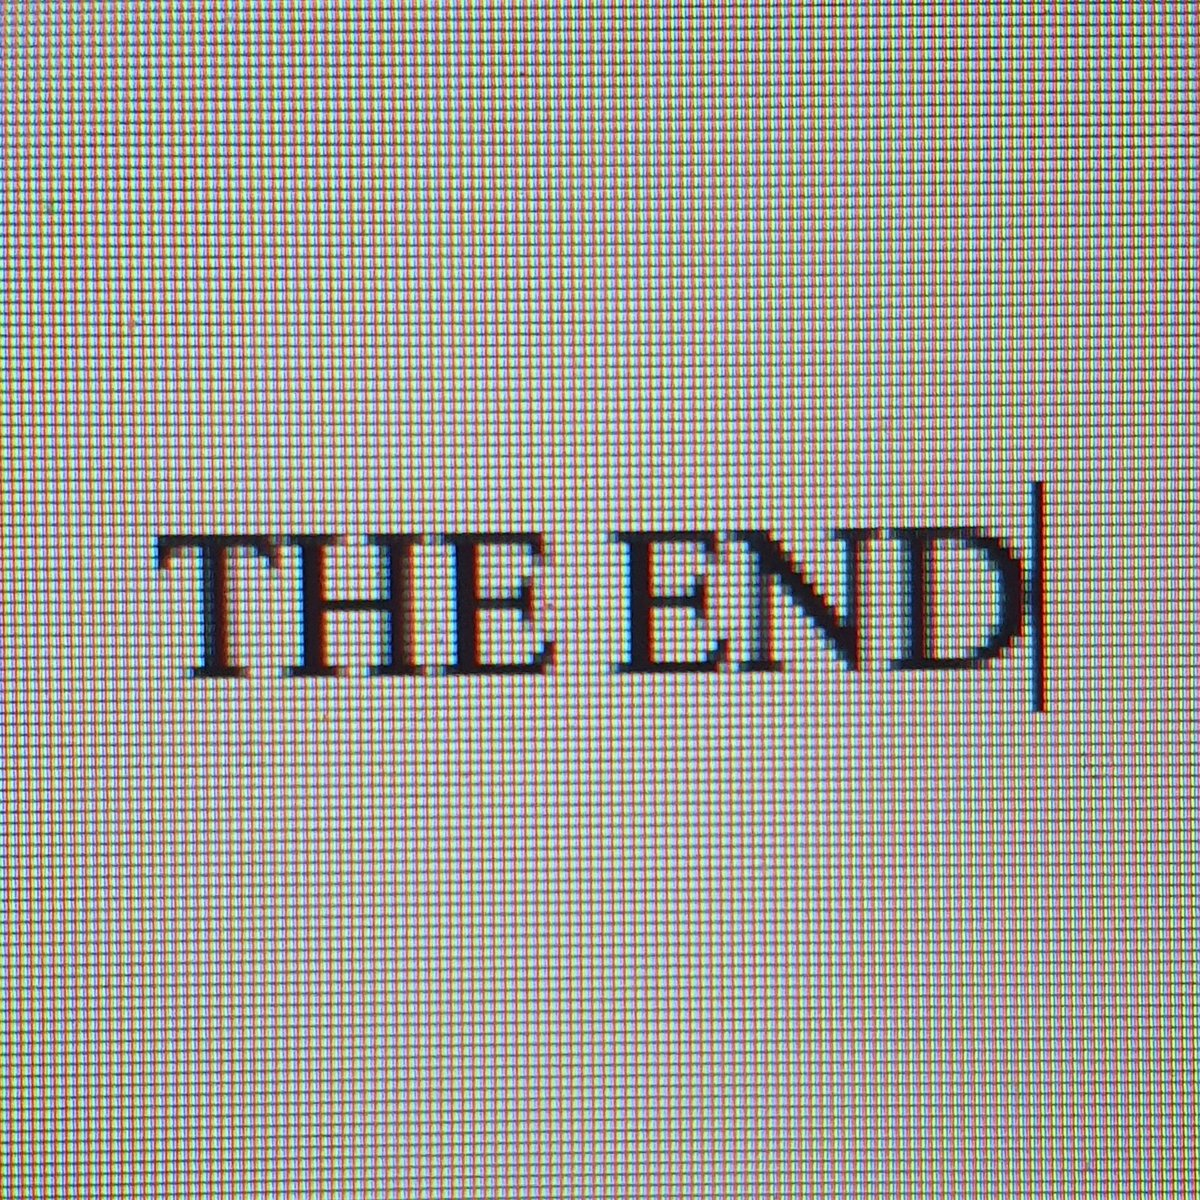 It's been over a year in the writing, even though I told people it would take six months! But today, I finished the 1st draft of my novel. I'm proud to have graduated from being a guy who's writing a novel to being a guy who had the determination to finish one. Thank you. #writer pic.twitter.com/aCHGtta8rN